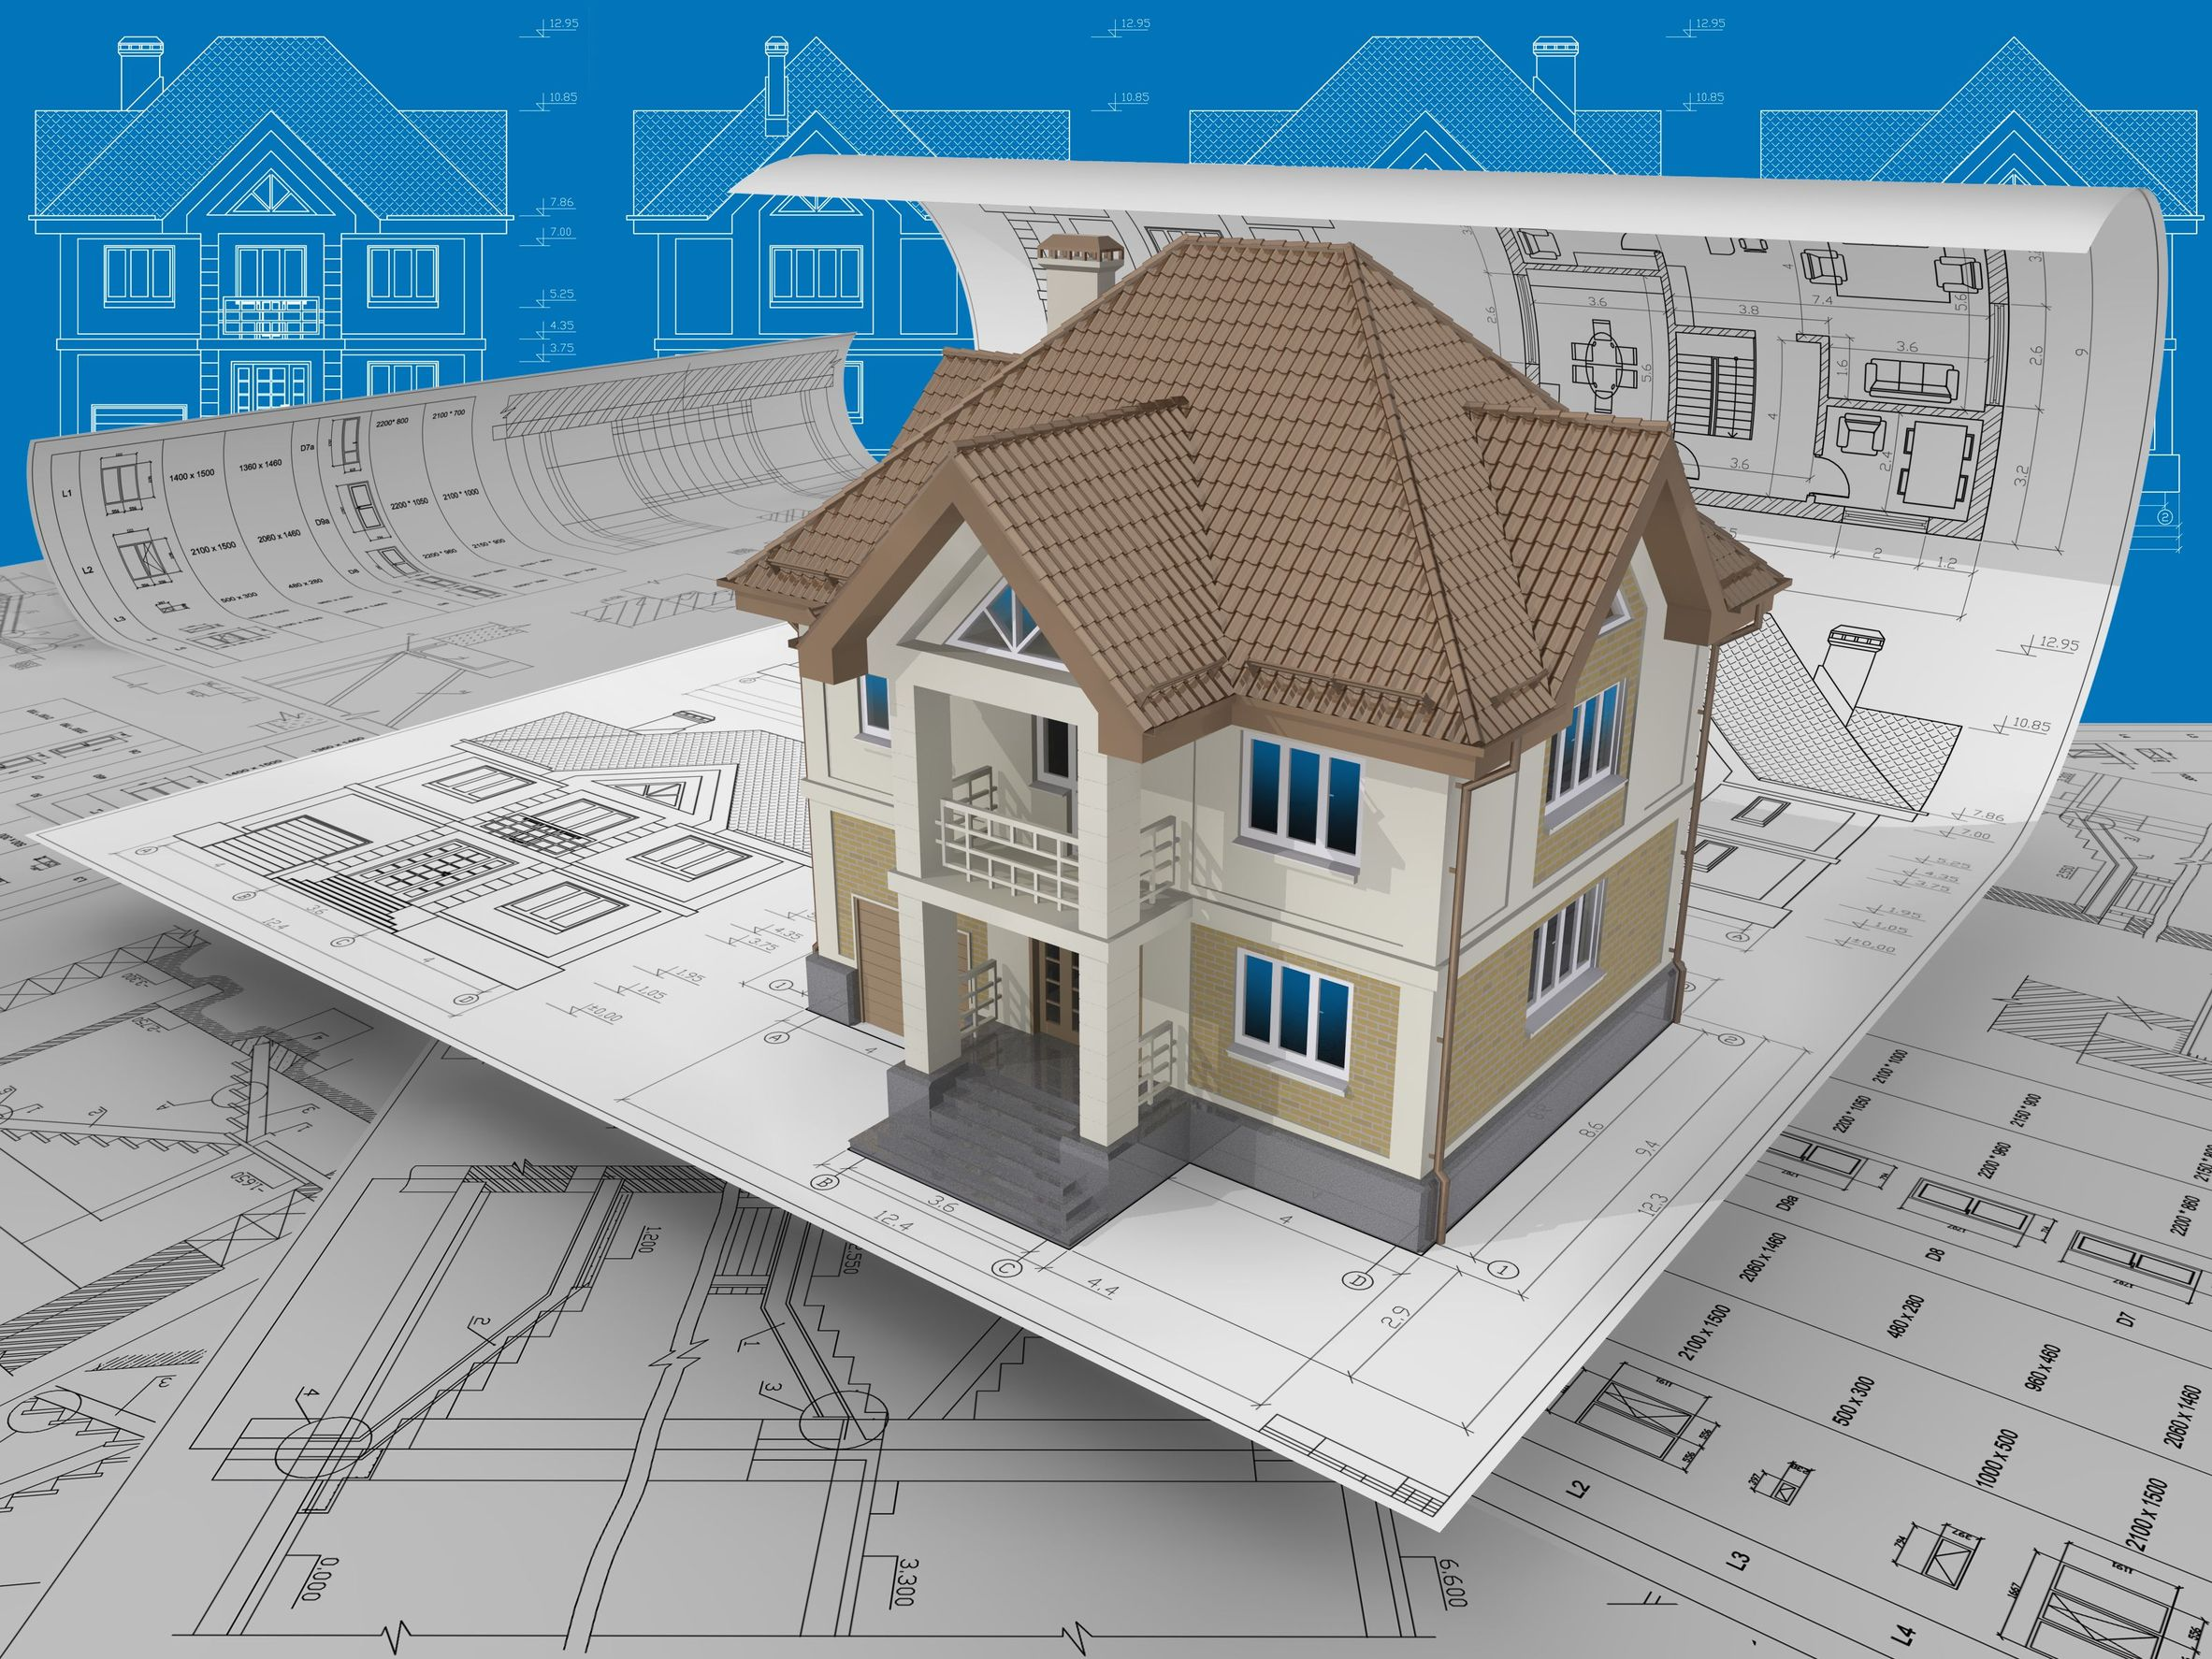 New construction homes for sale near Fort Meade